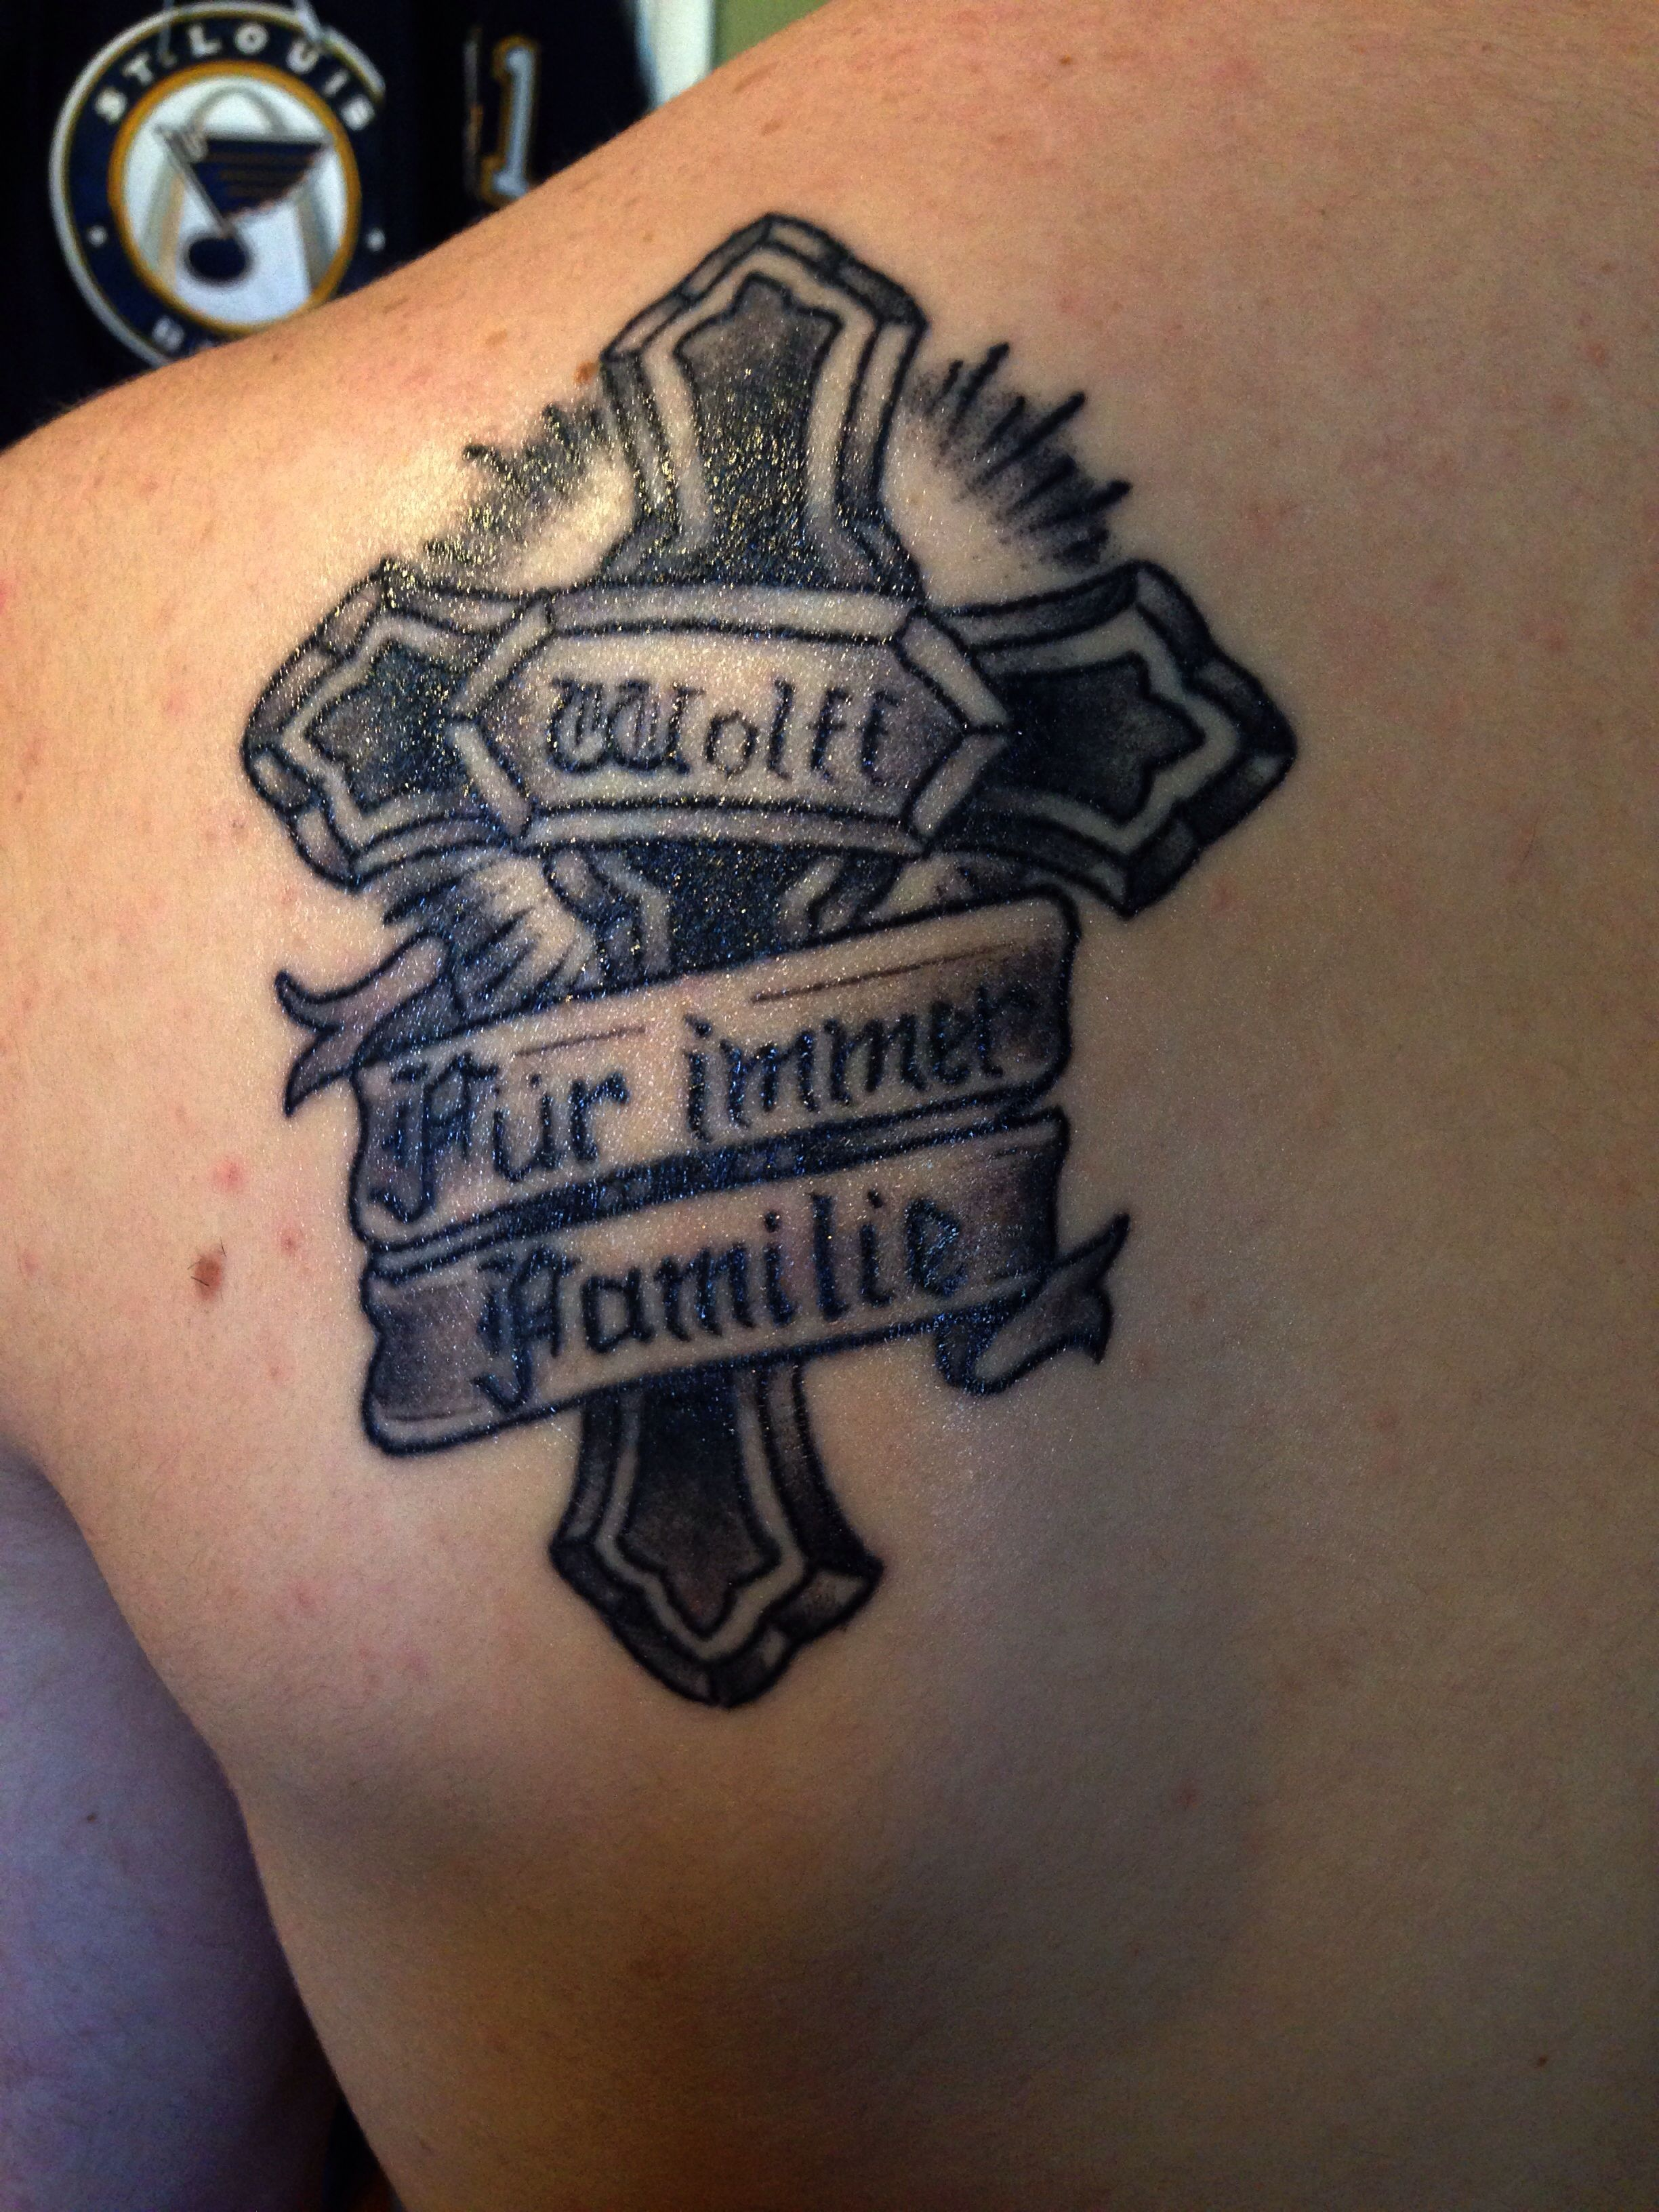 Cross tattoo with family last name and forever family in german cross tattoo with family last name and forever family in german publicscrutiny Gallery